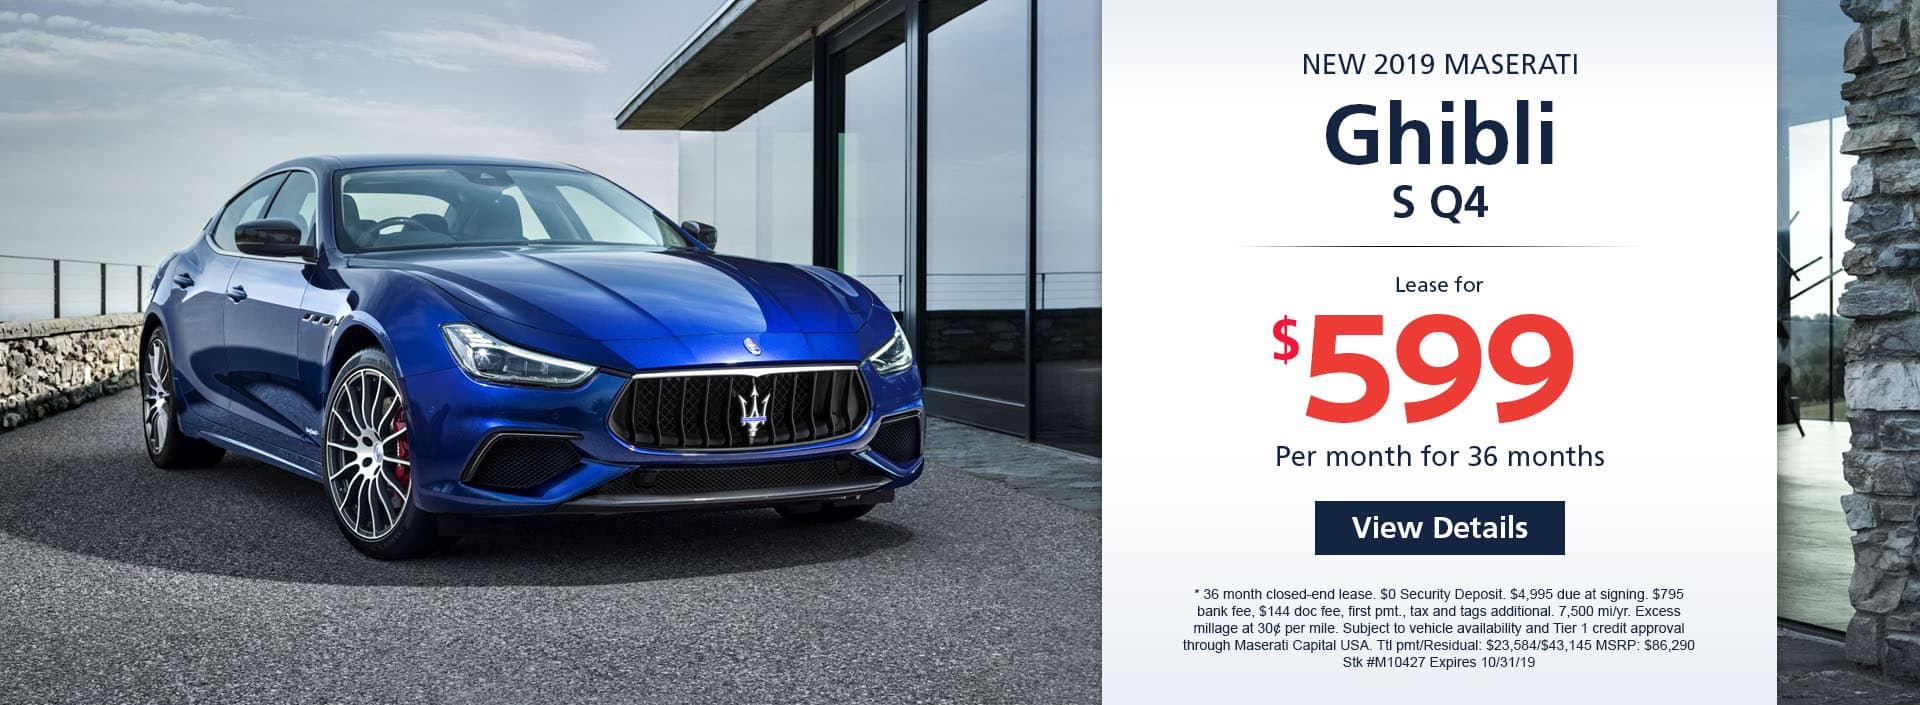 Lease a new 2019 Maserati Ghibli S Q4 for $599 a month for 36 months. Or get special 0% APR financing for up to 60 months or 0% APR financing up to 72 months